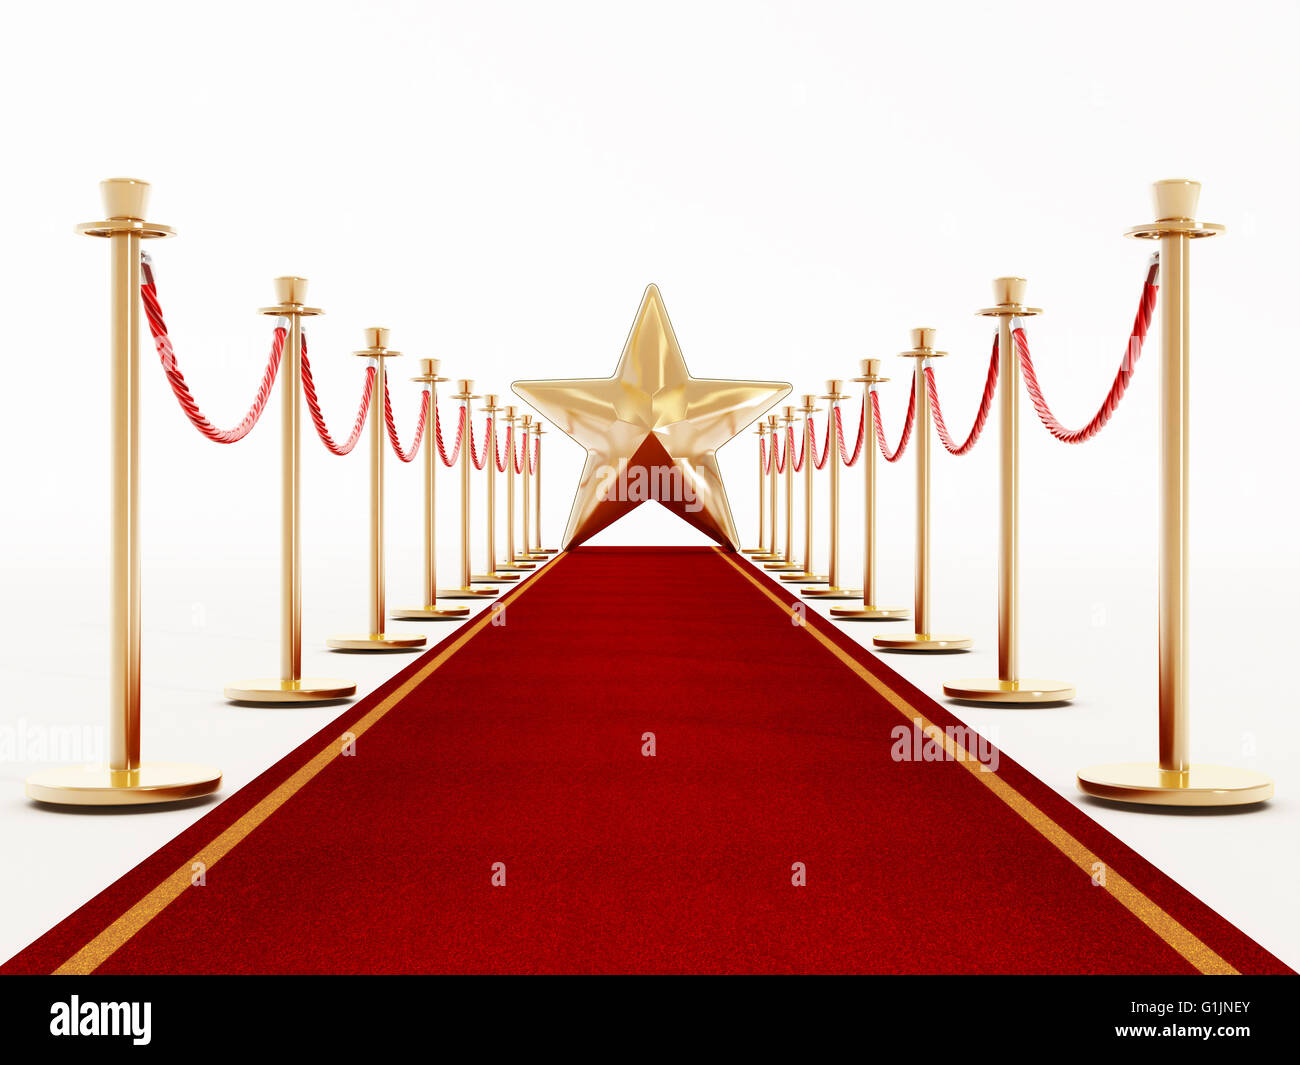 Roter Teppich Schauspieler Red Carpet Event Stockfotos And Red Carpet Event Bilder Alamy